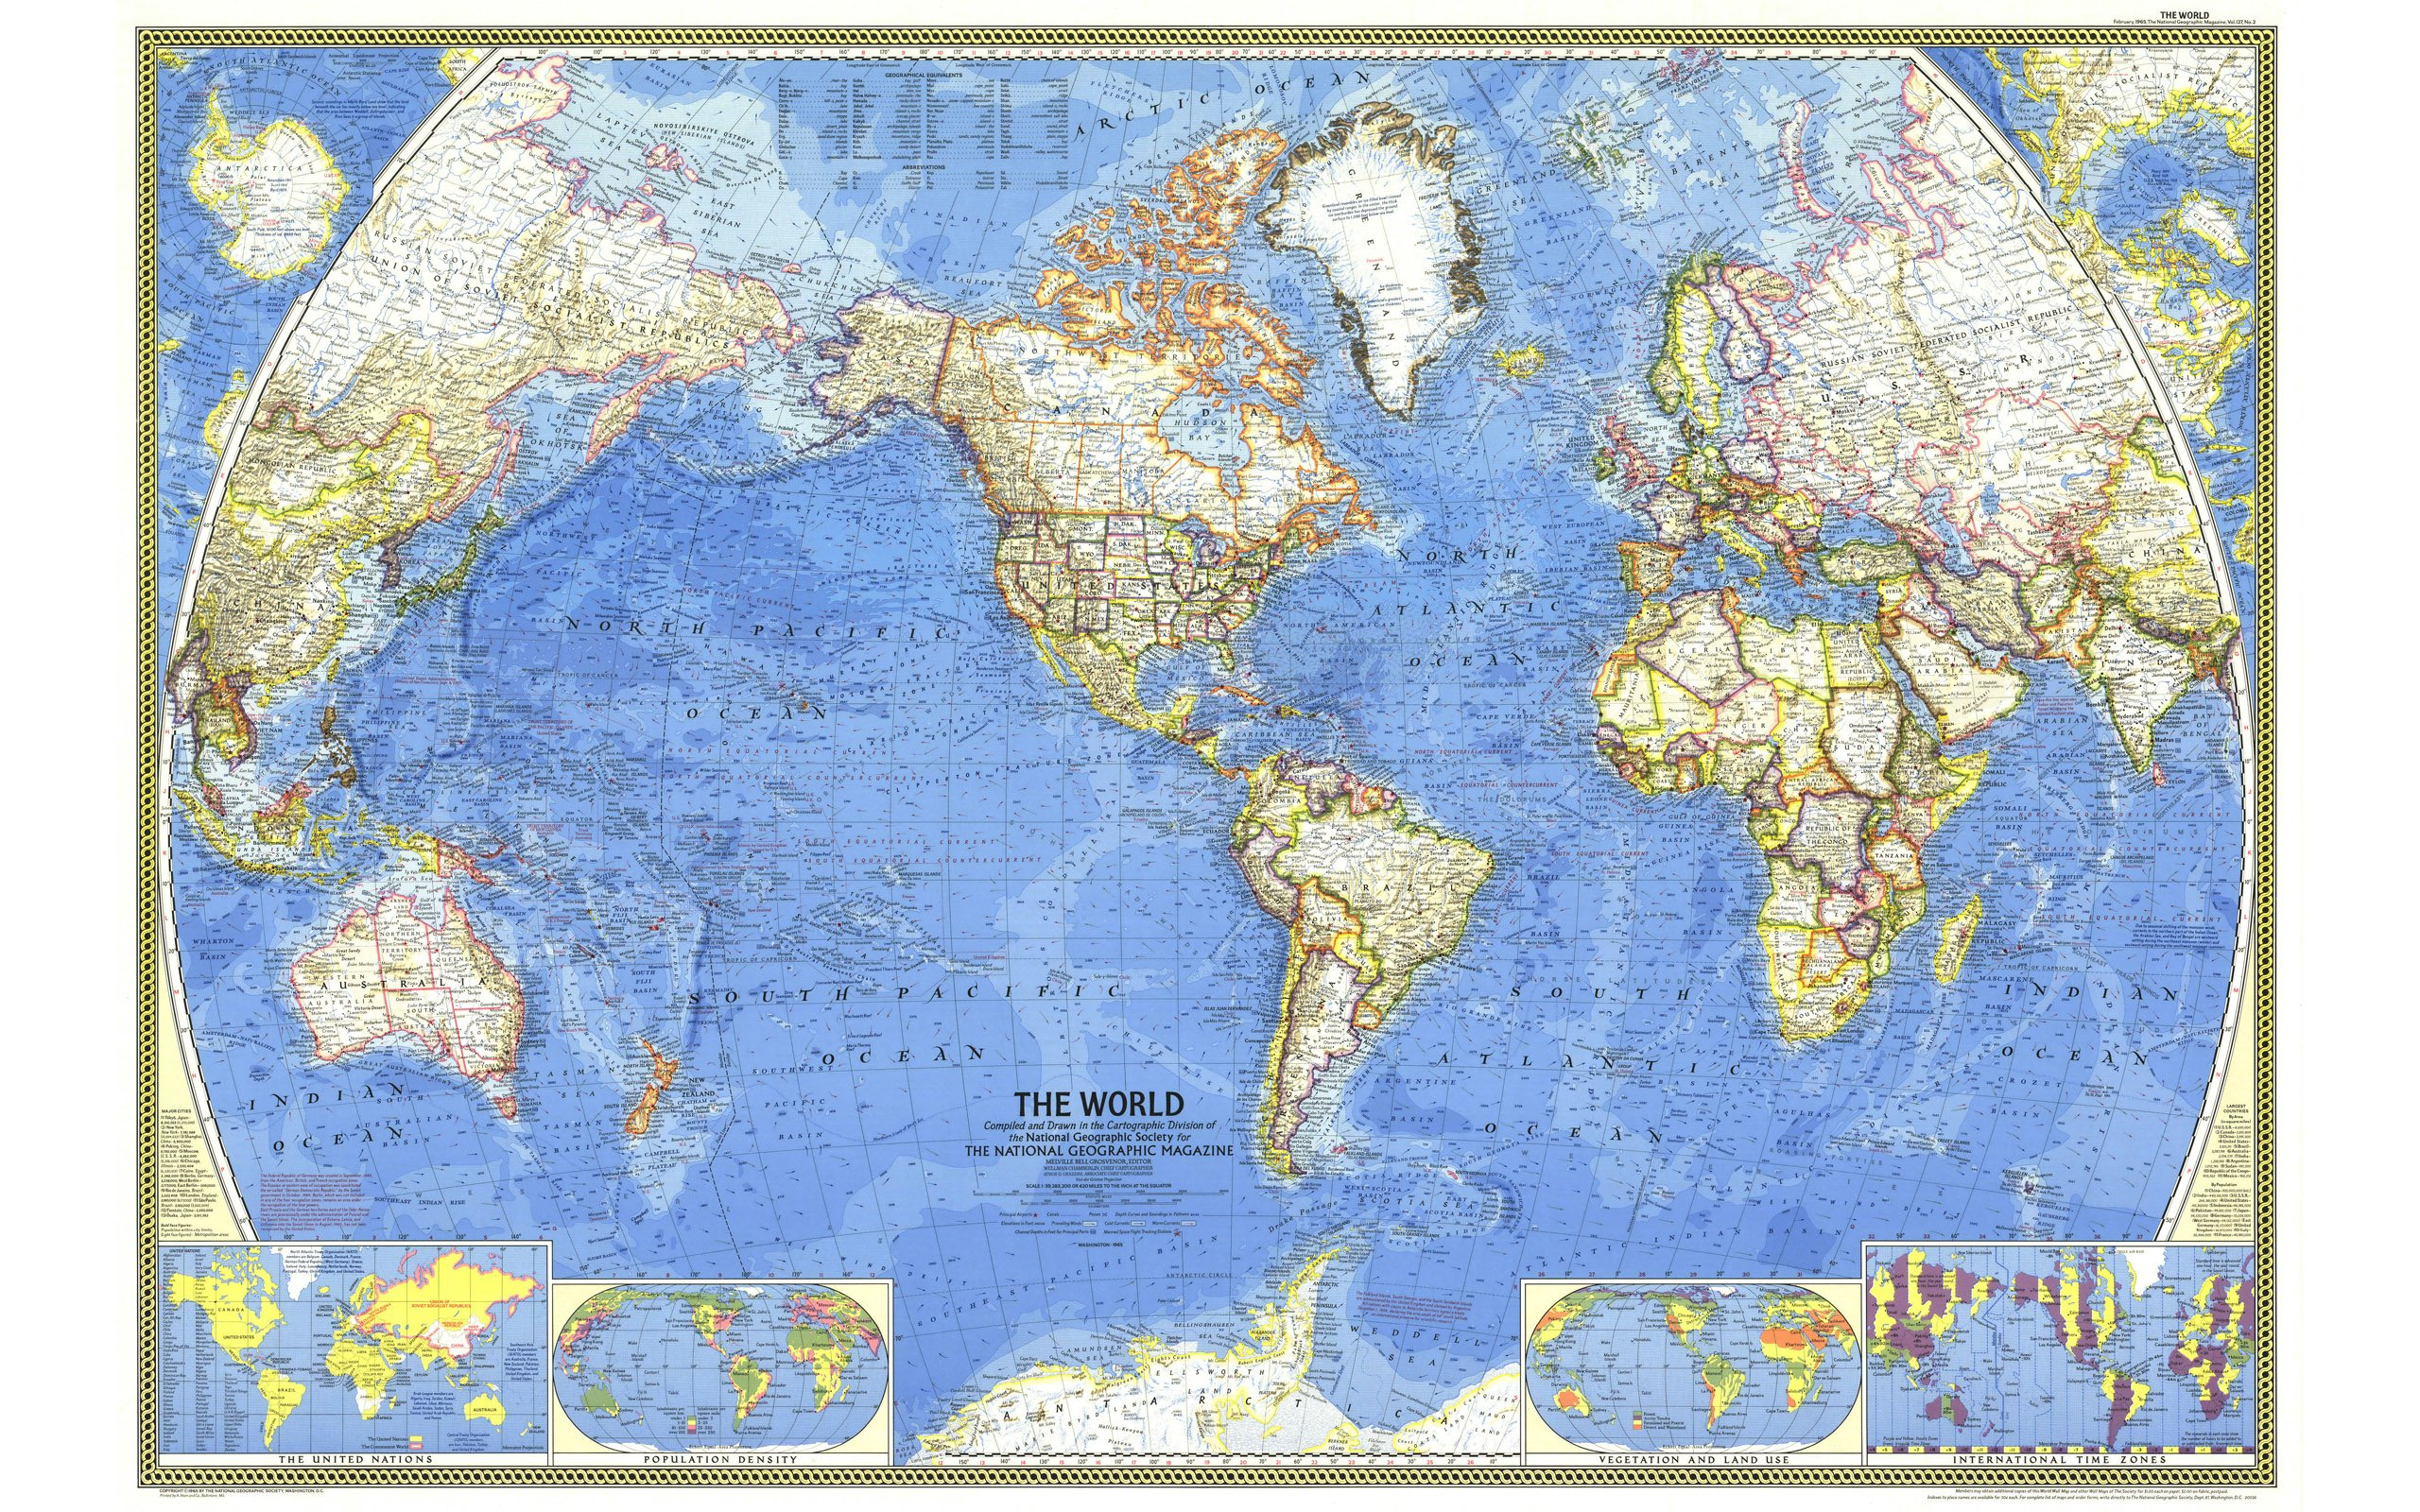 Free Download National Geographic World Map Wallpaper 1103463